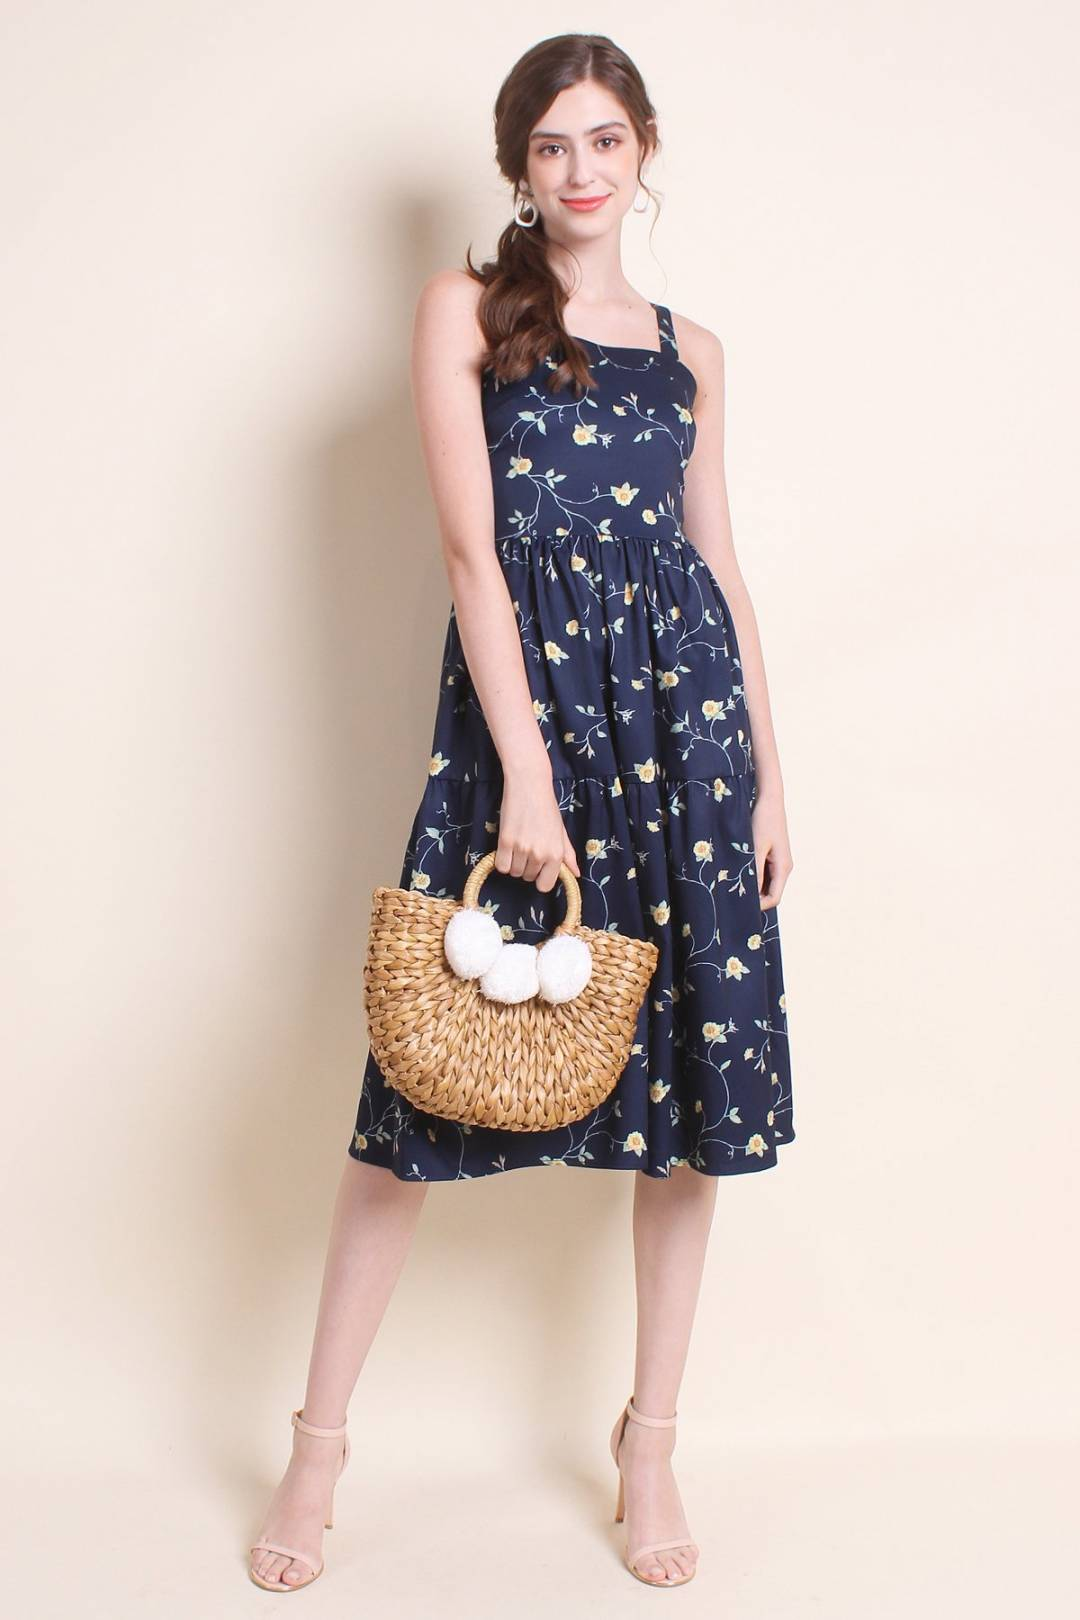 MADEBYNM EMERALDINE FLORAL FIT N FLARE TEA DRESS IN NAVY BLUE [XS/S/M/L/XL]